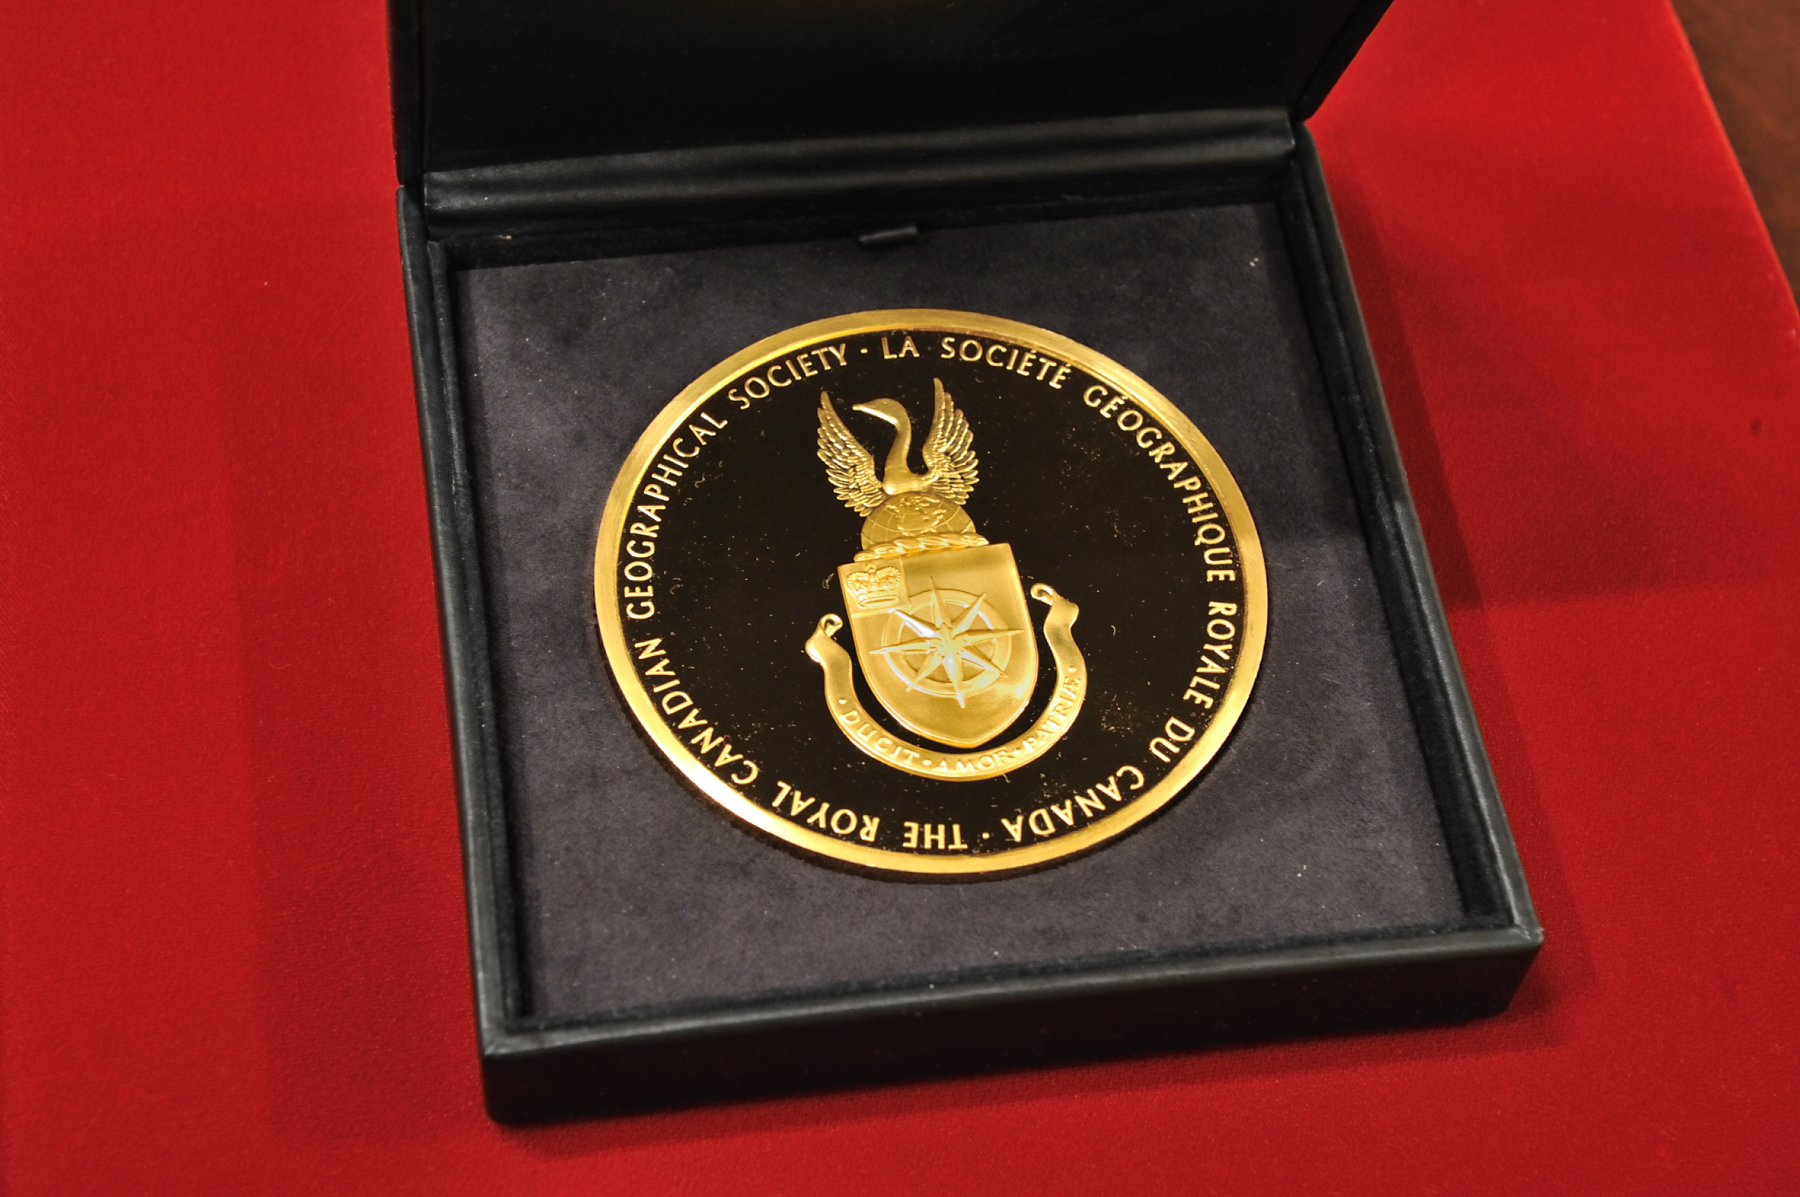 Each year, the Massey Medal is awarded in recognition of outstanding career achievement in the exploration, development or description of the geography of Canada.